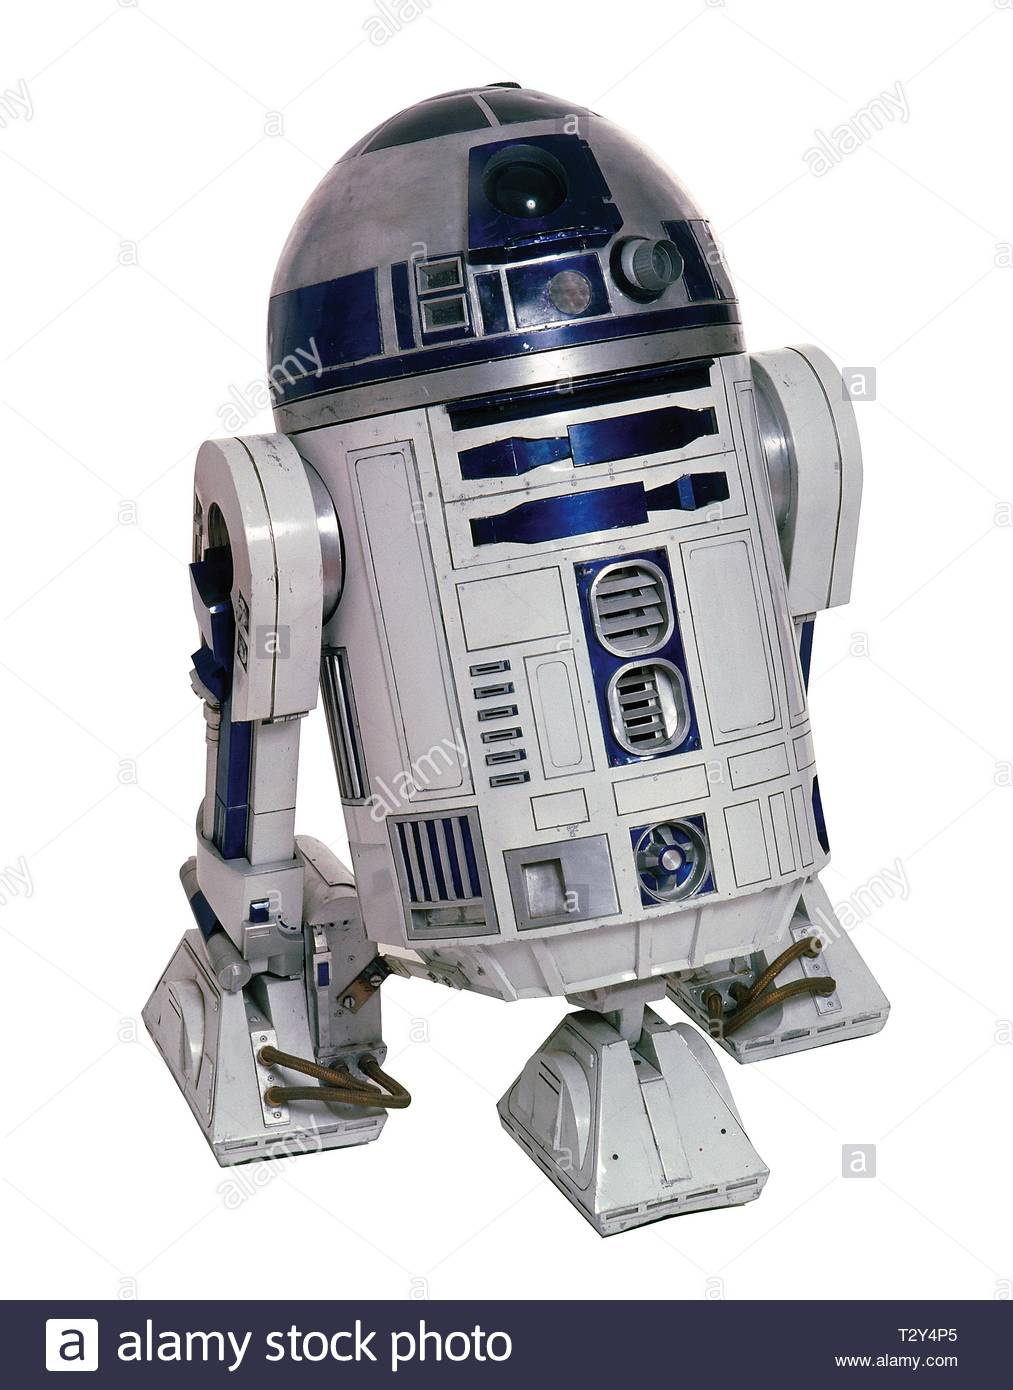 R2-D2, STAR WARS: EPISODE IV - A NEW HOPE, 1977 - Stock Image